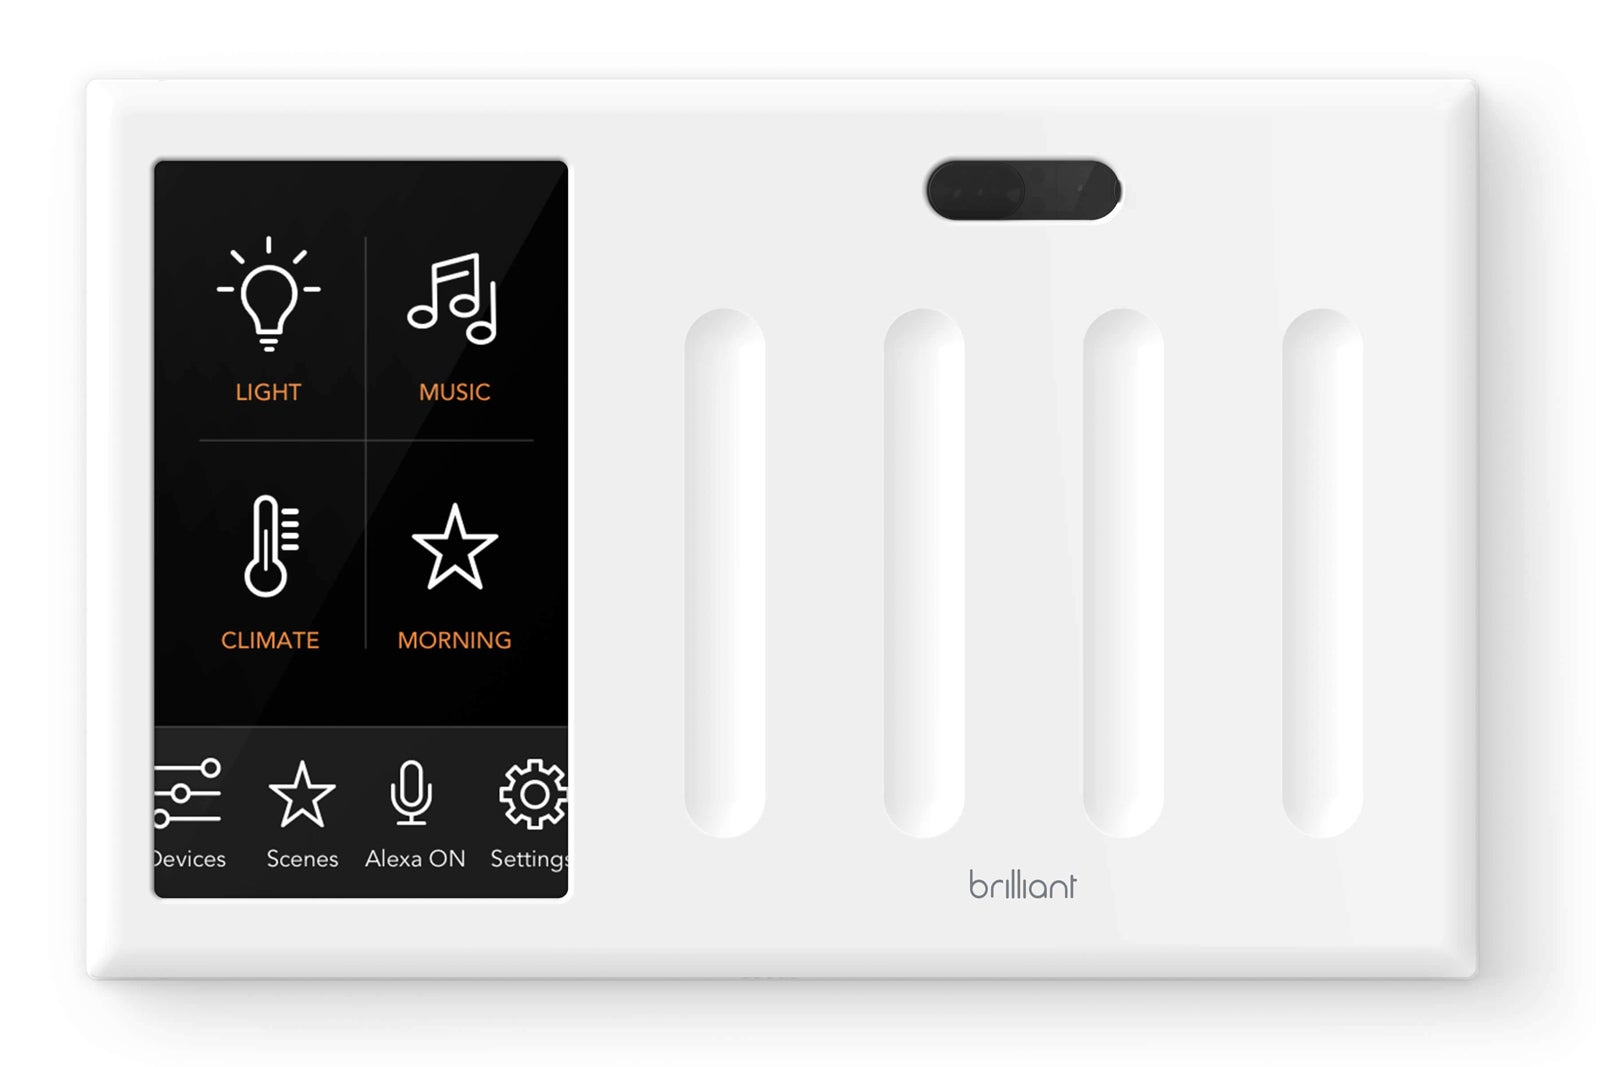 Brilliant Control Review Impressive Blend Of Switch And Smart Home 2 Way Wiring House Controller But Theres Room For Improvement Techhive